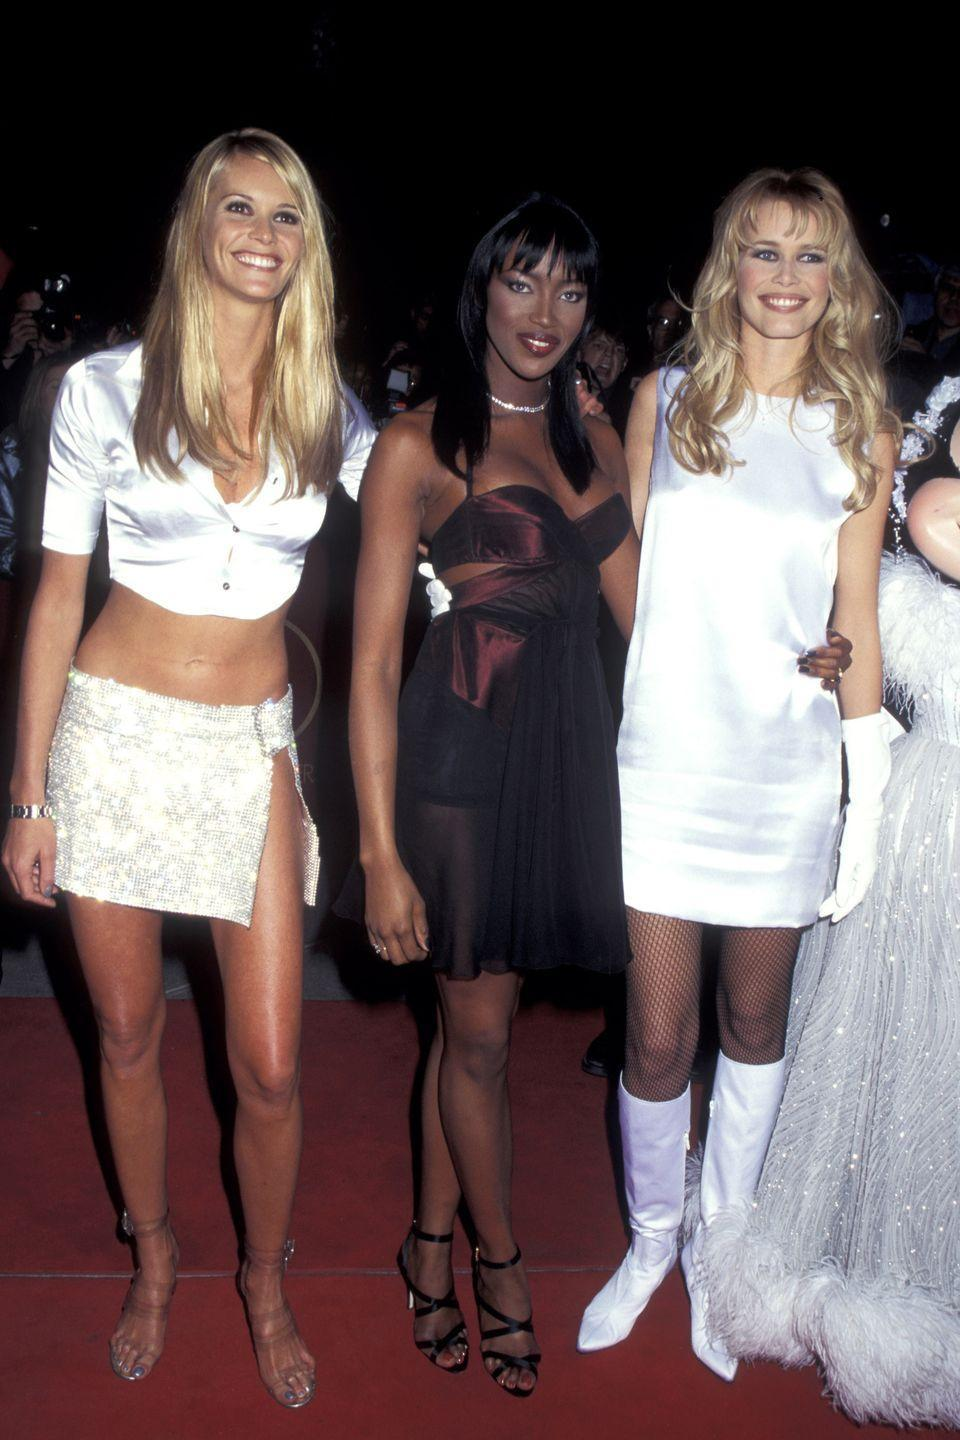 <p>Straight off the Versace runway head to toe in white satin!</p>